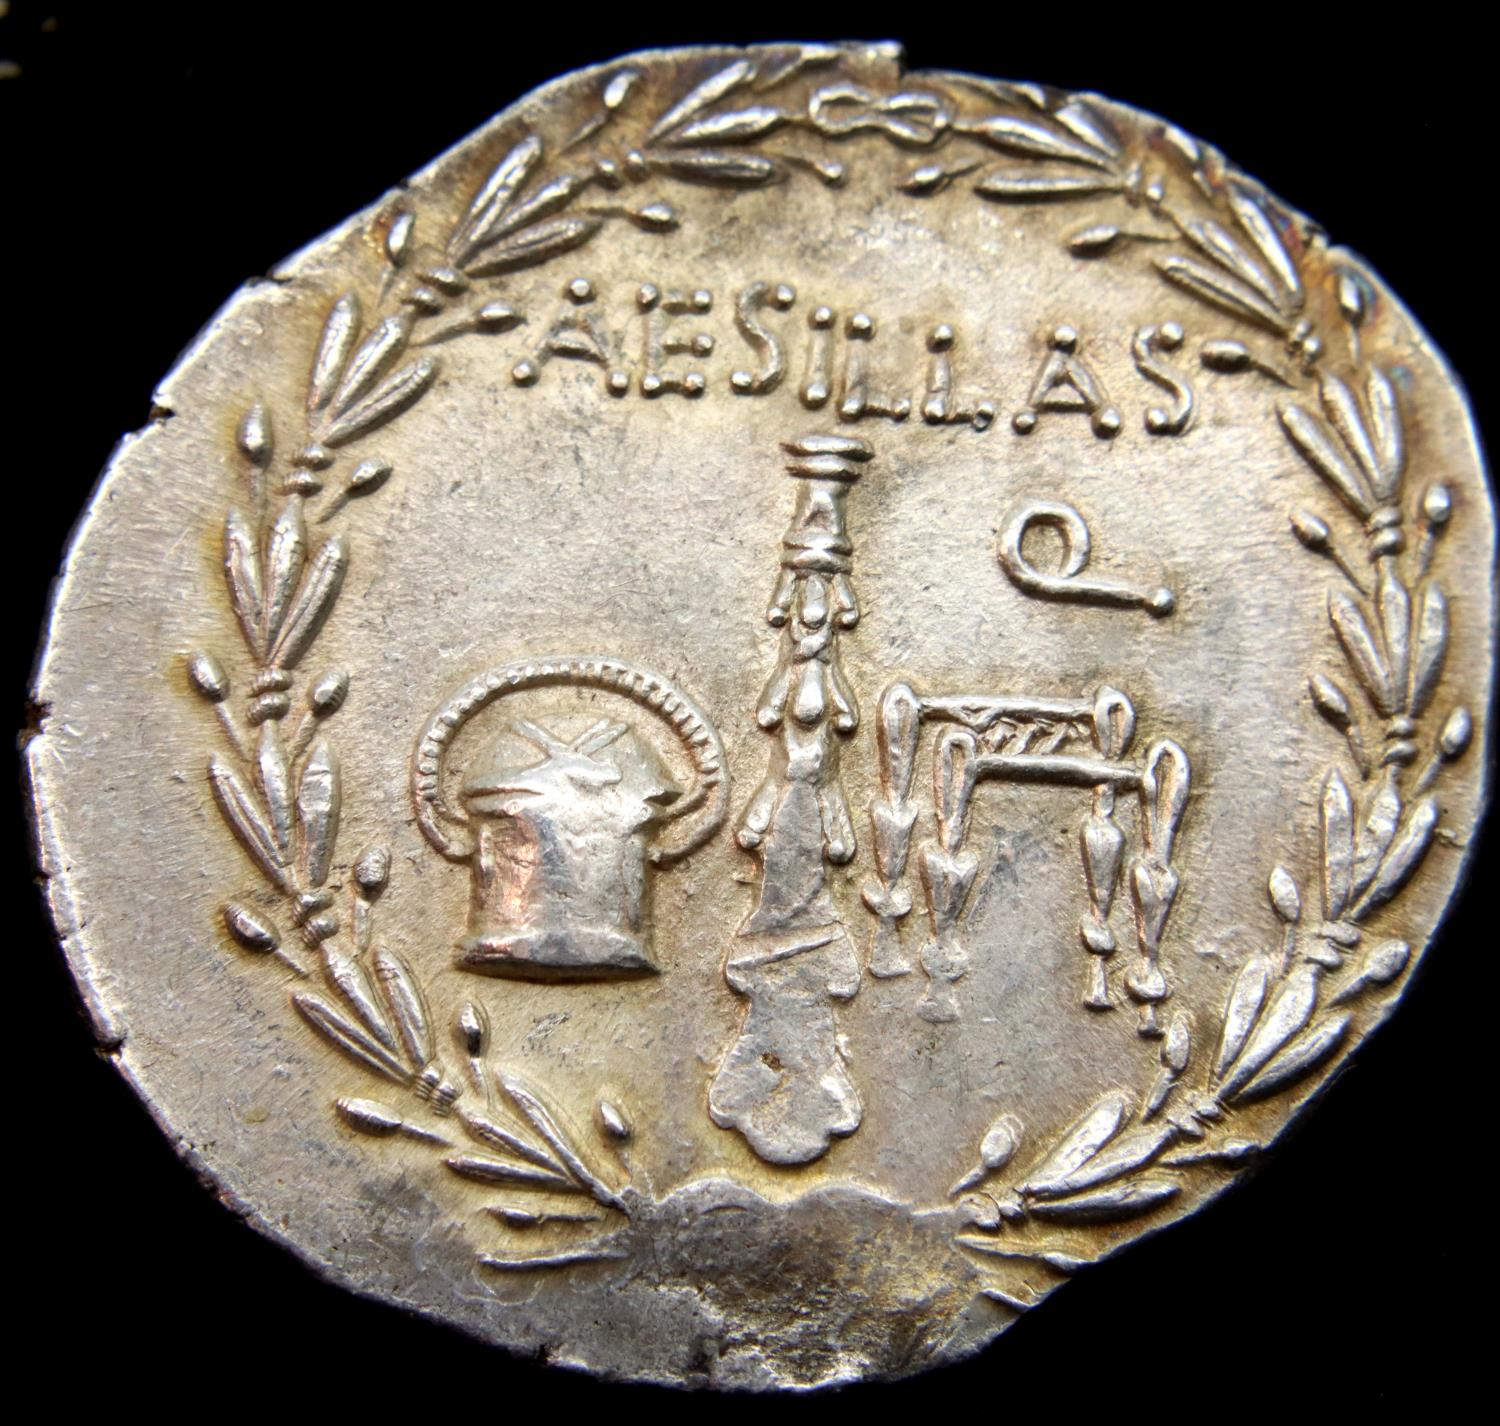 Silver tetradrachm of Alexander The Great, heavy gauge 16.7g. P&P Group 1 (£14+VAT for the first lot